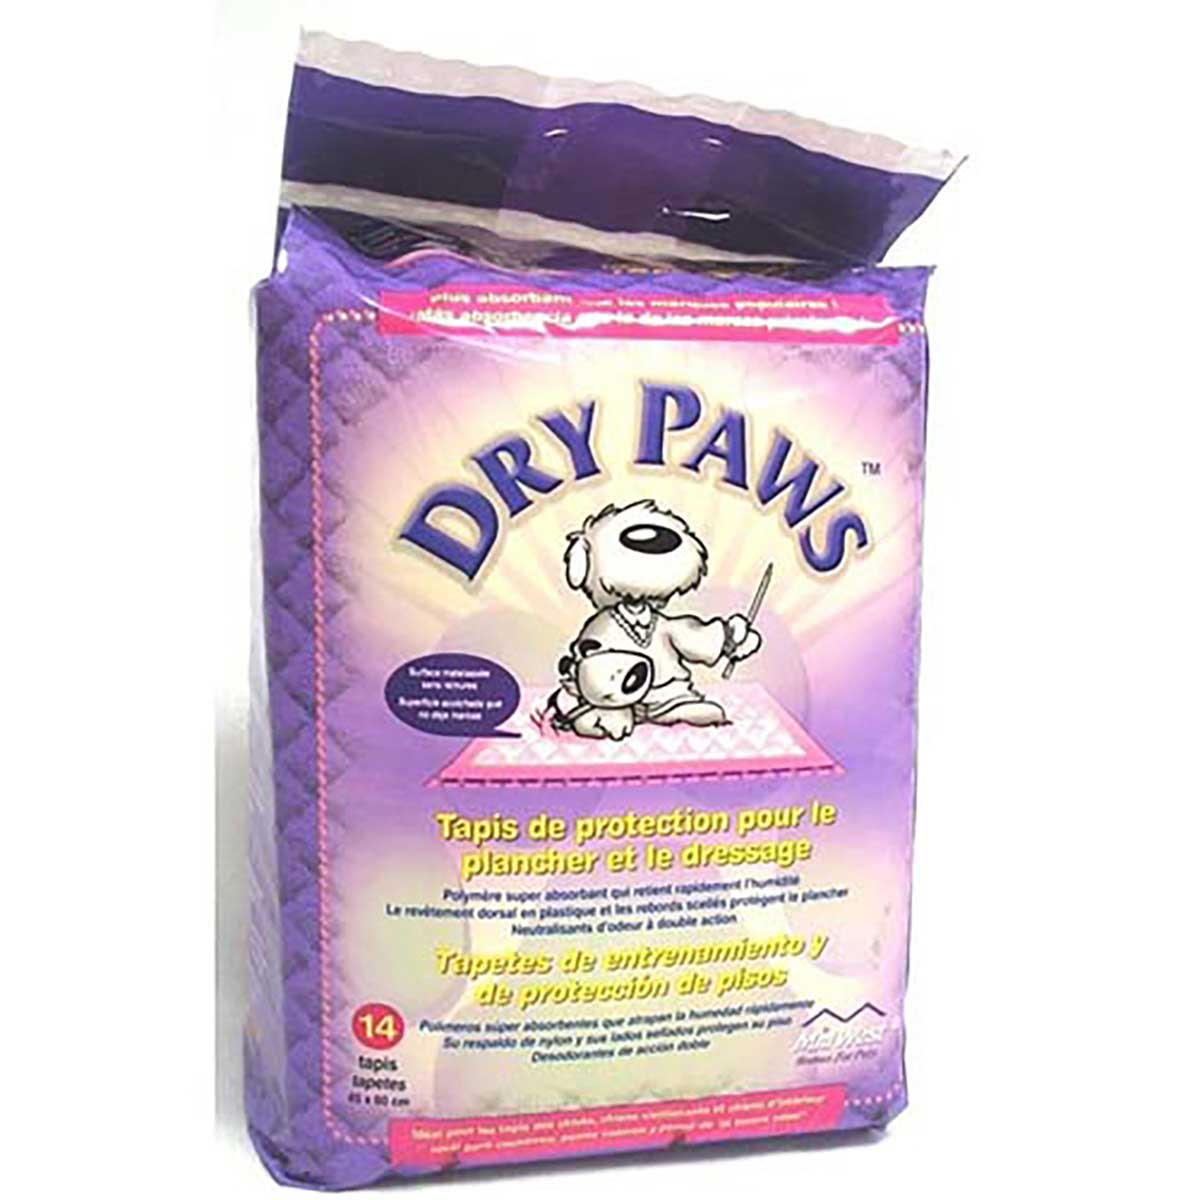 Dry Paws Large Puppy Training Pads - 23.5 inches by 29.5 inches - 14 Pads